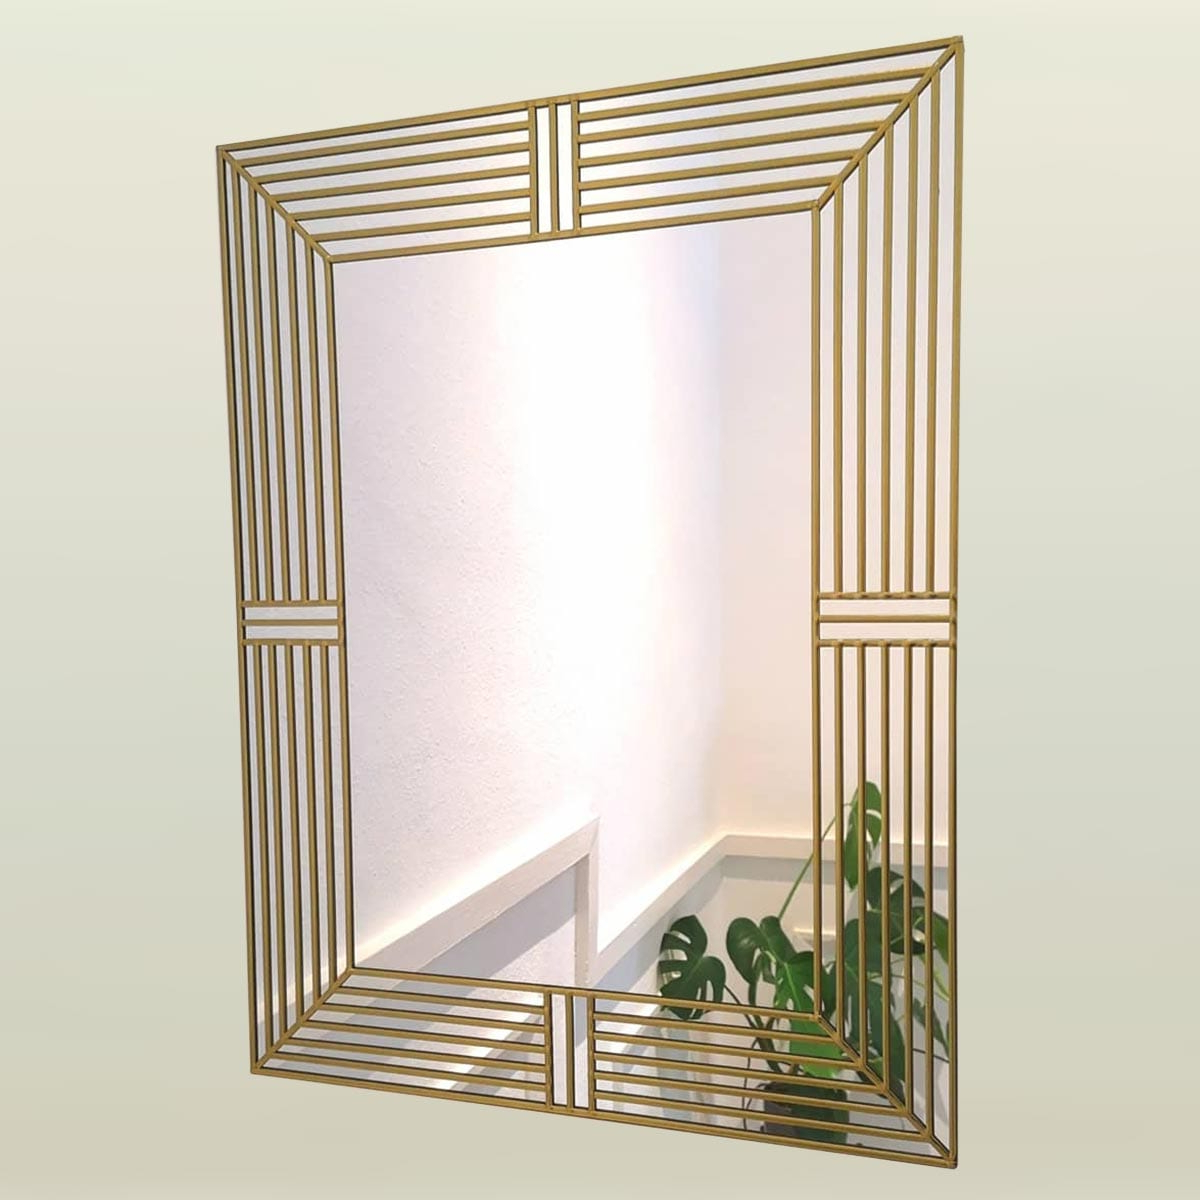 Famous Art Deco Wall Mirrors In Art Deco Wall Mirror 61x91cm (2ftx3ft) (View 2 of 20)